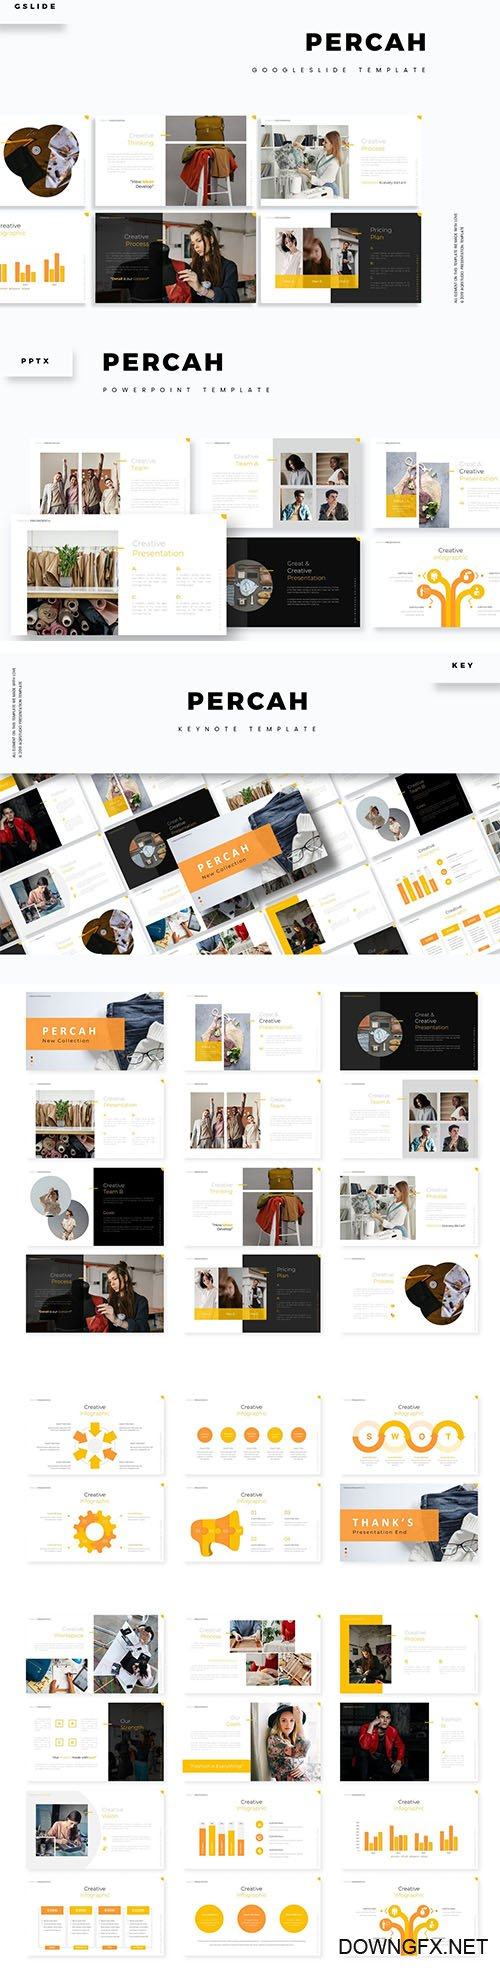 Percah Powerpoint, Keynote and Google Slide Template